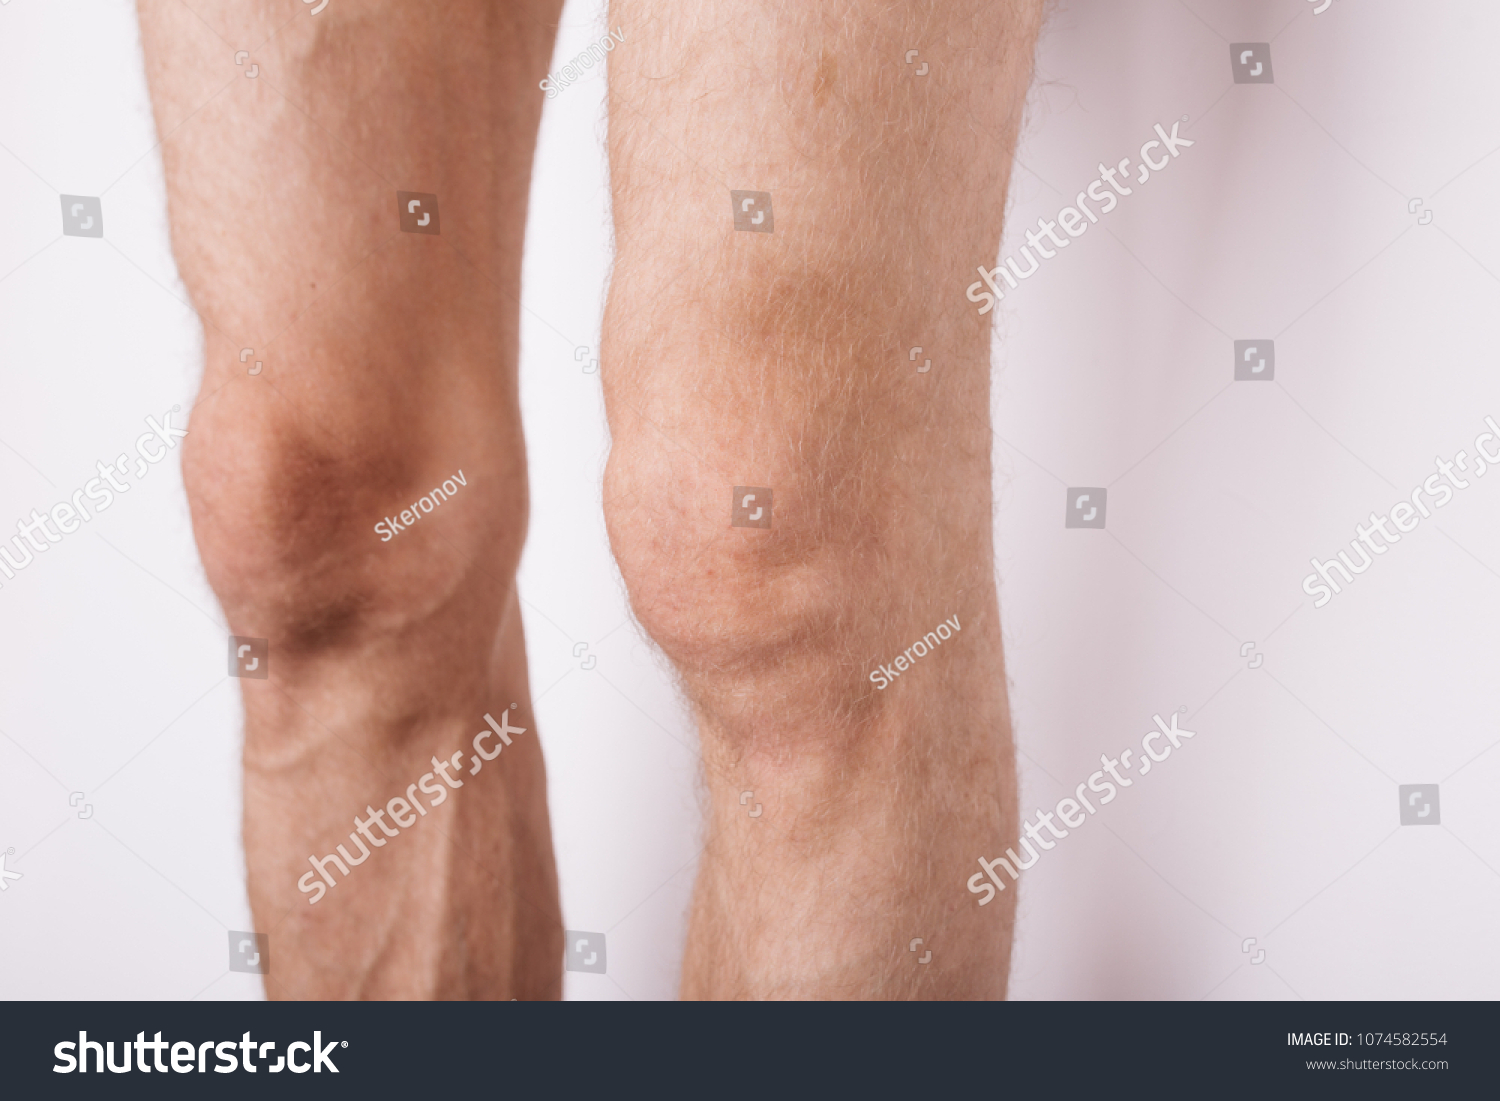 Male Hairy Feet Body Parts Knees Stock Photo Edit Now 1074582554